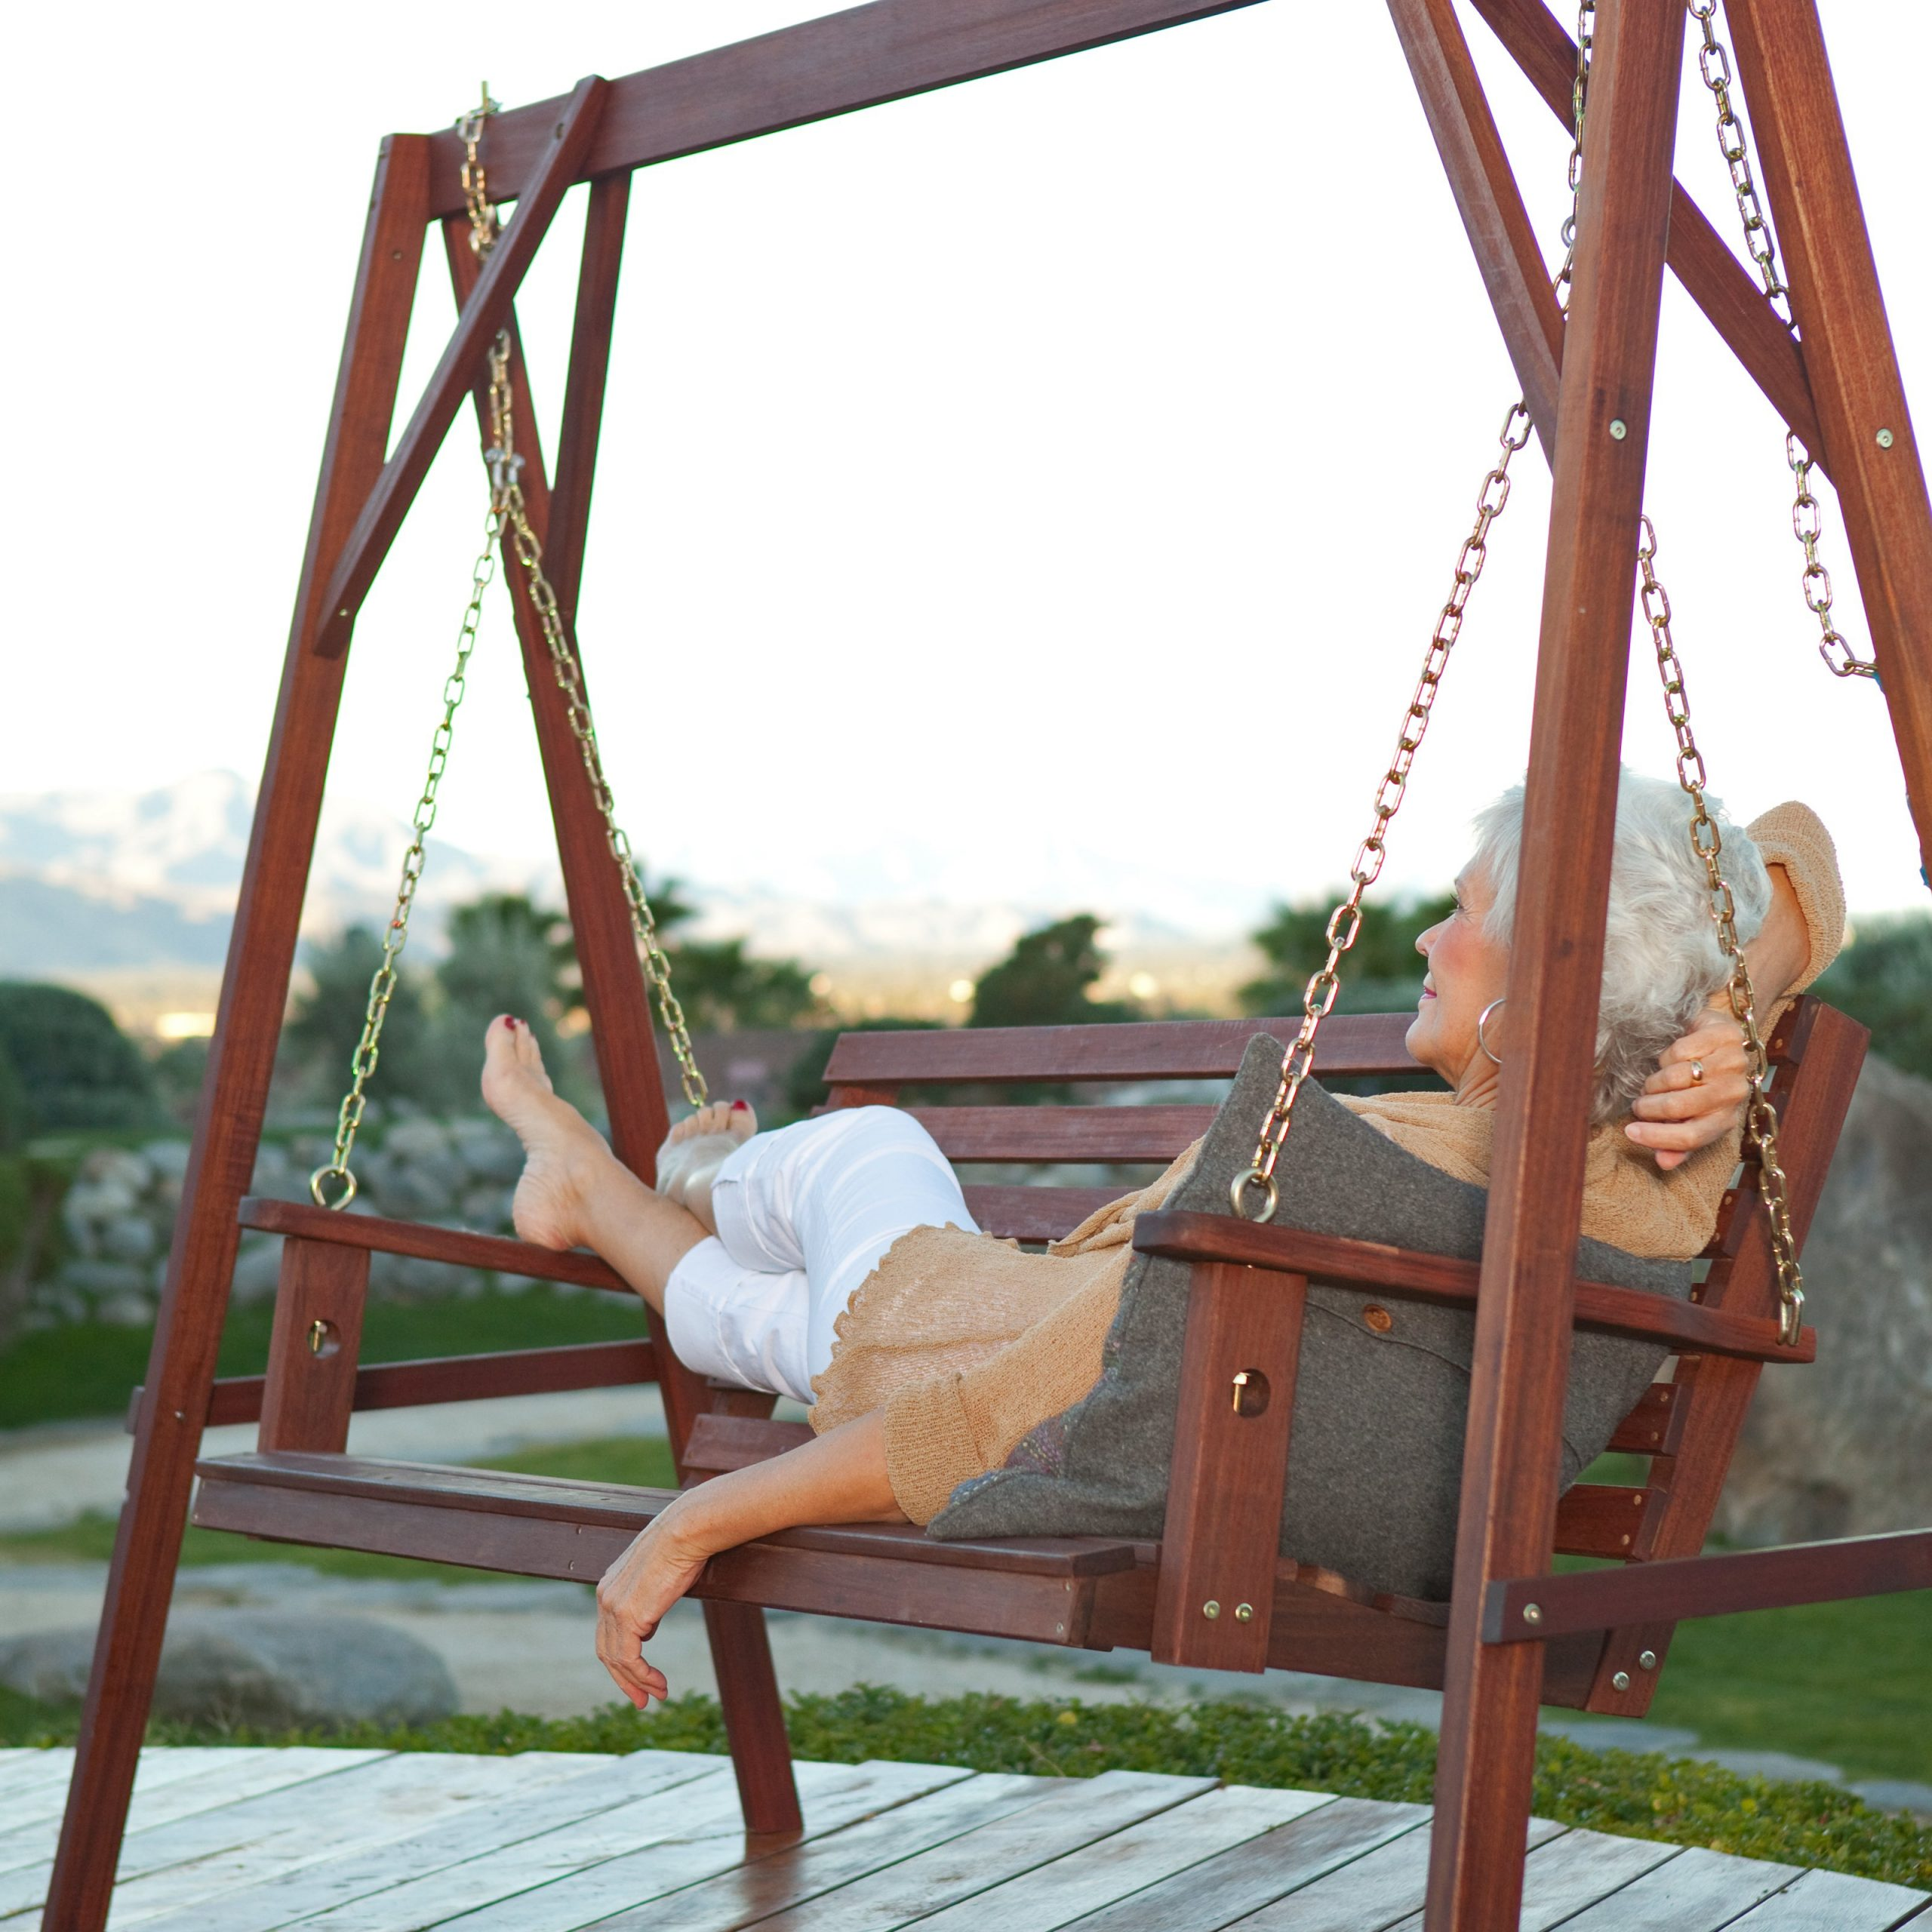 Widely Used Porch Swings With Stand Throughout Belham Living Richmond Straight Back Porch Swing & Stand (Gallery 23 of 30)